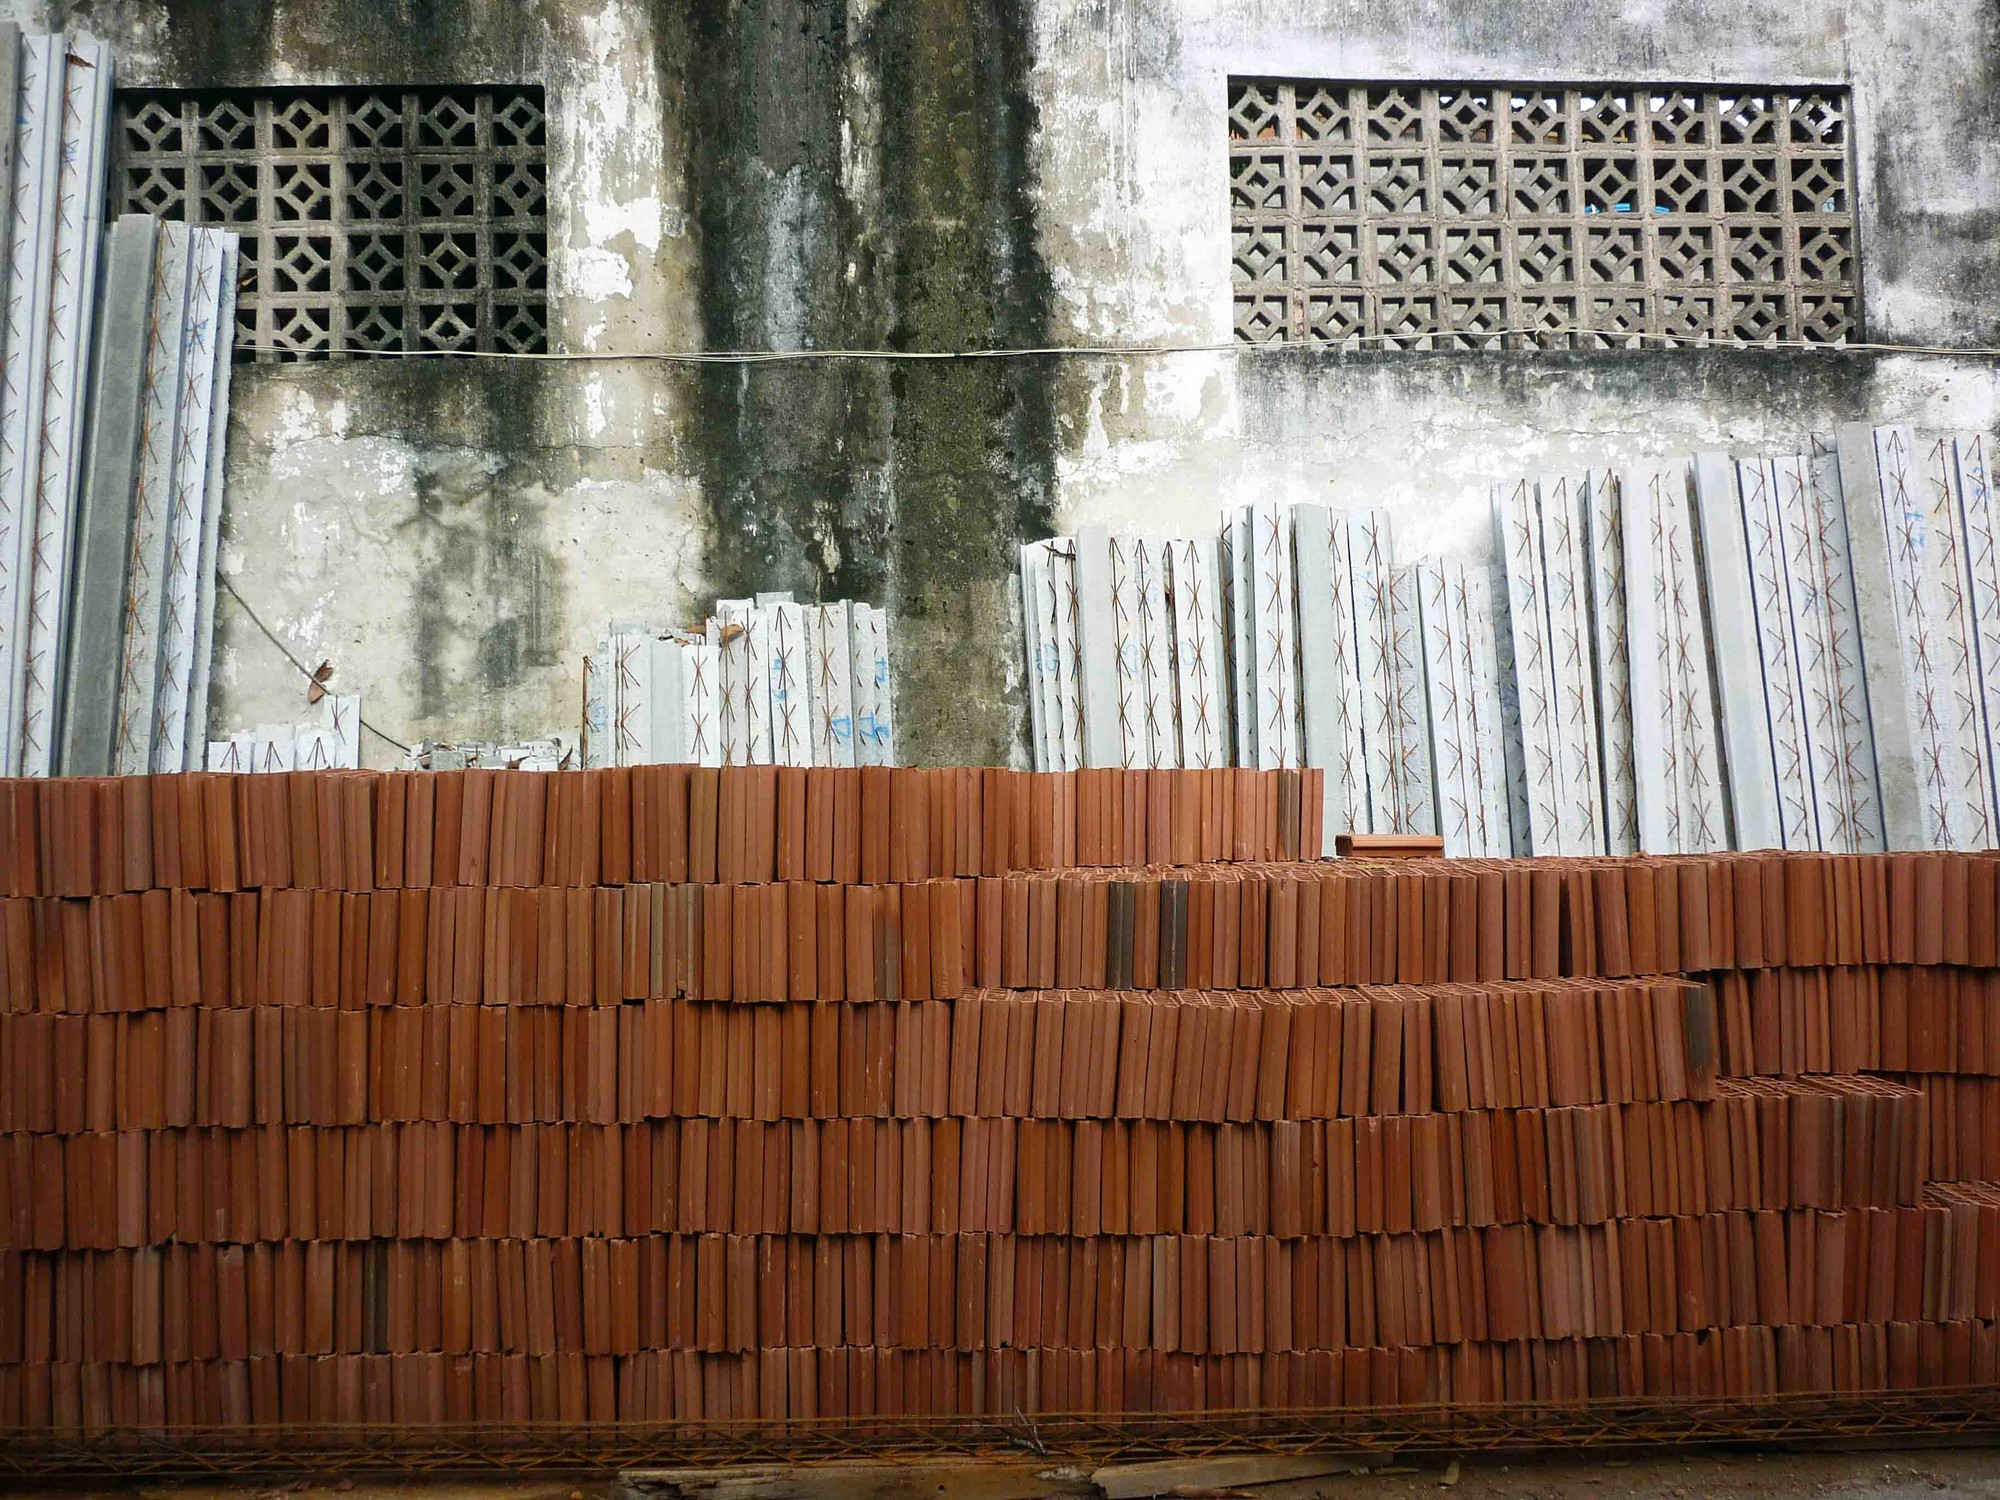 Floor beams and bricks. Image © Solène Veysseyre